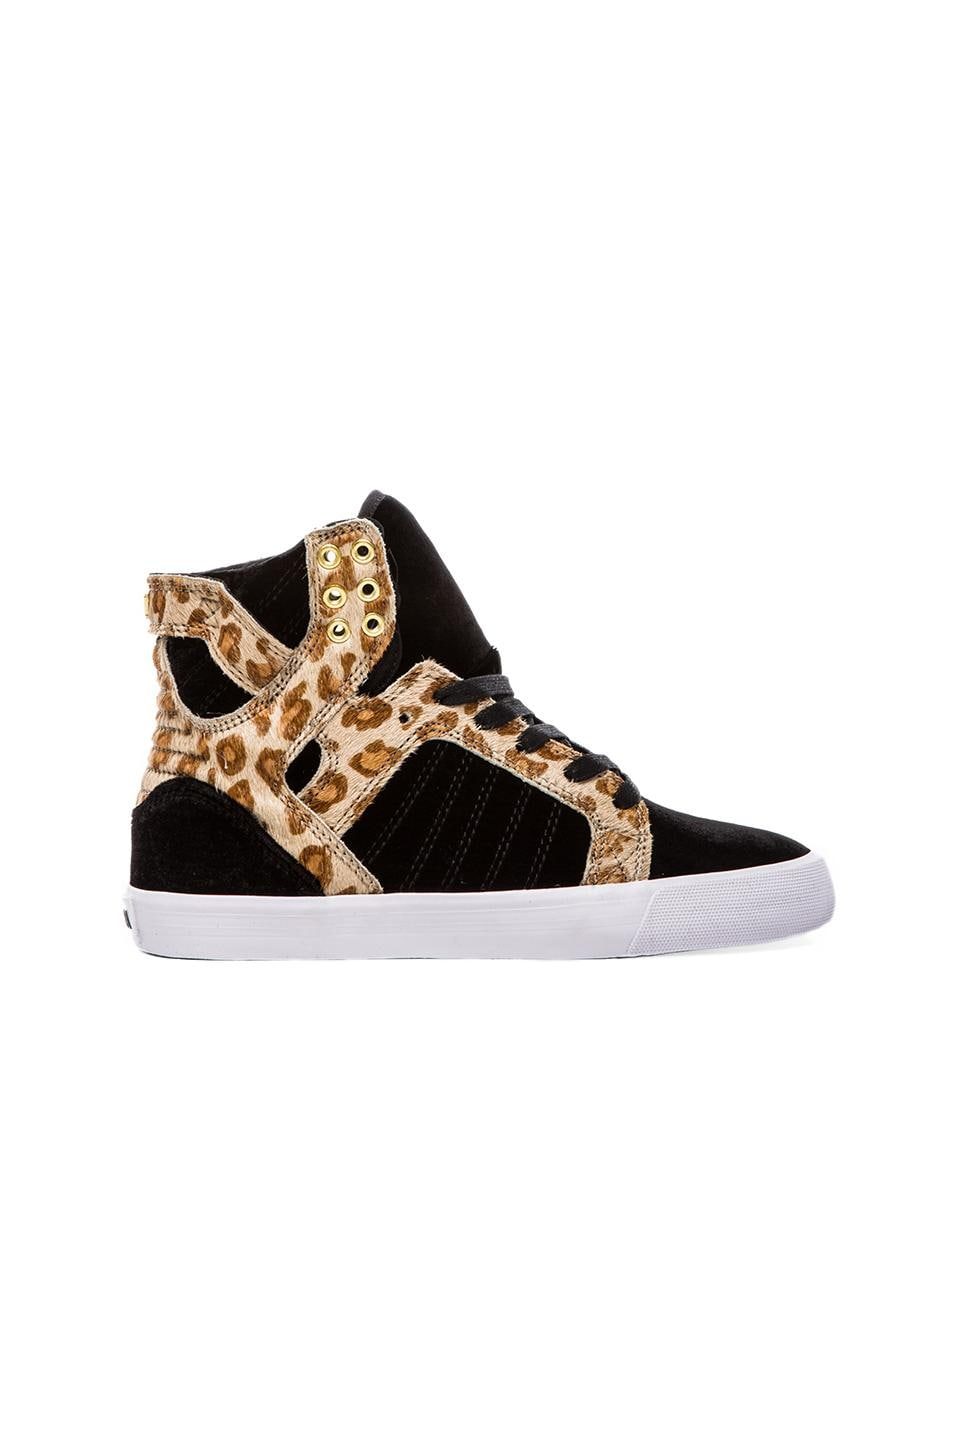 Supra A-Morir Skytop Sneaker with Pony Hair in Black Velvet & Cheetah